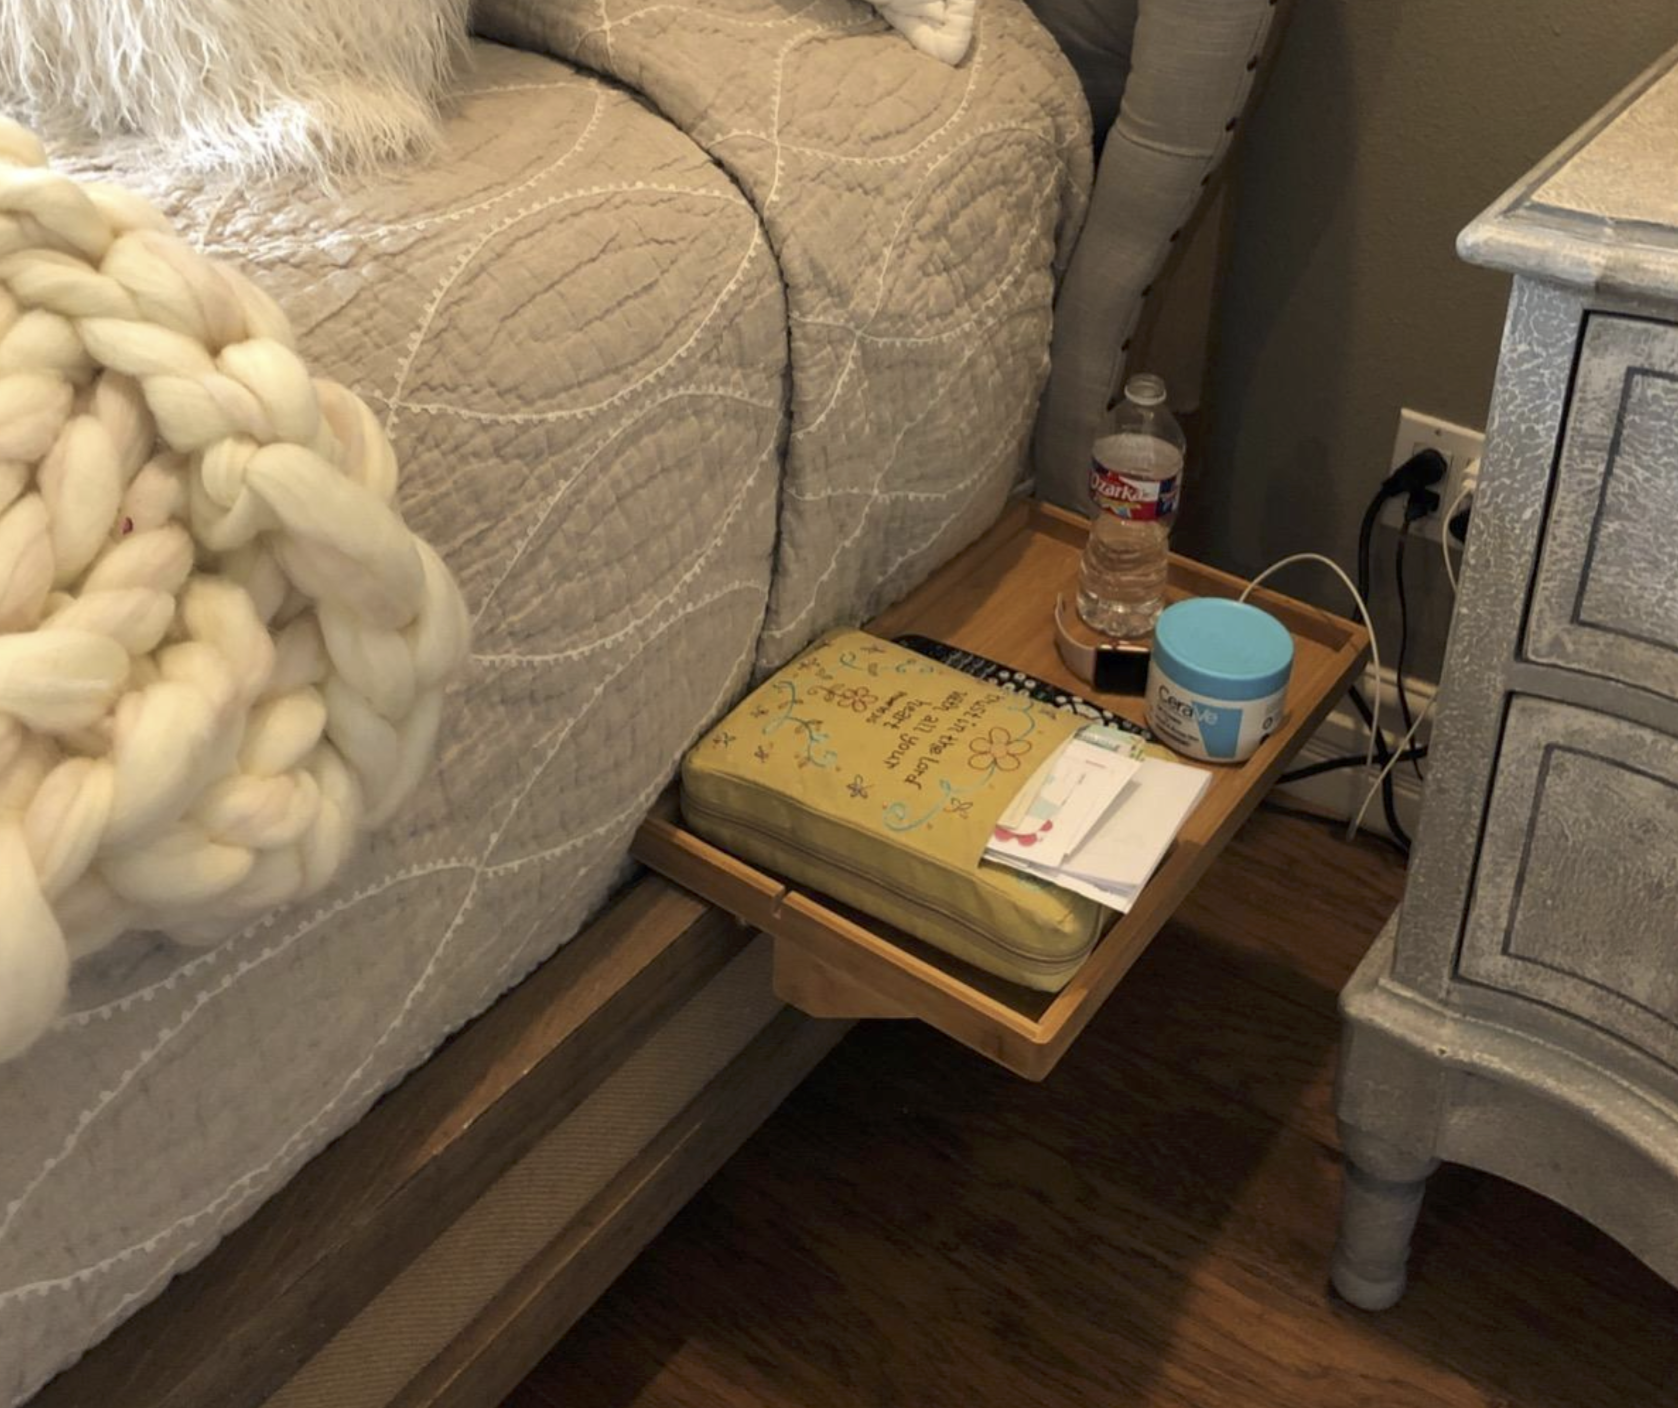 a wooden tray attached to a bed with moisturizer, a bottle of water, a watch, and a book sitting on it